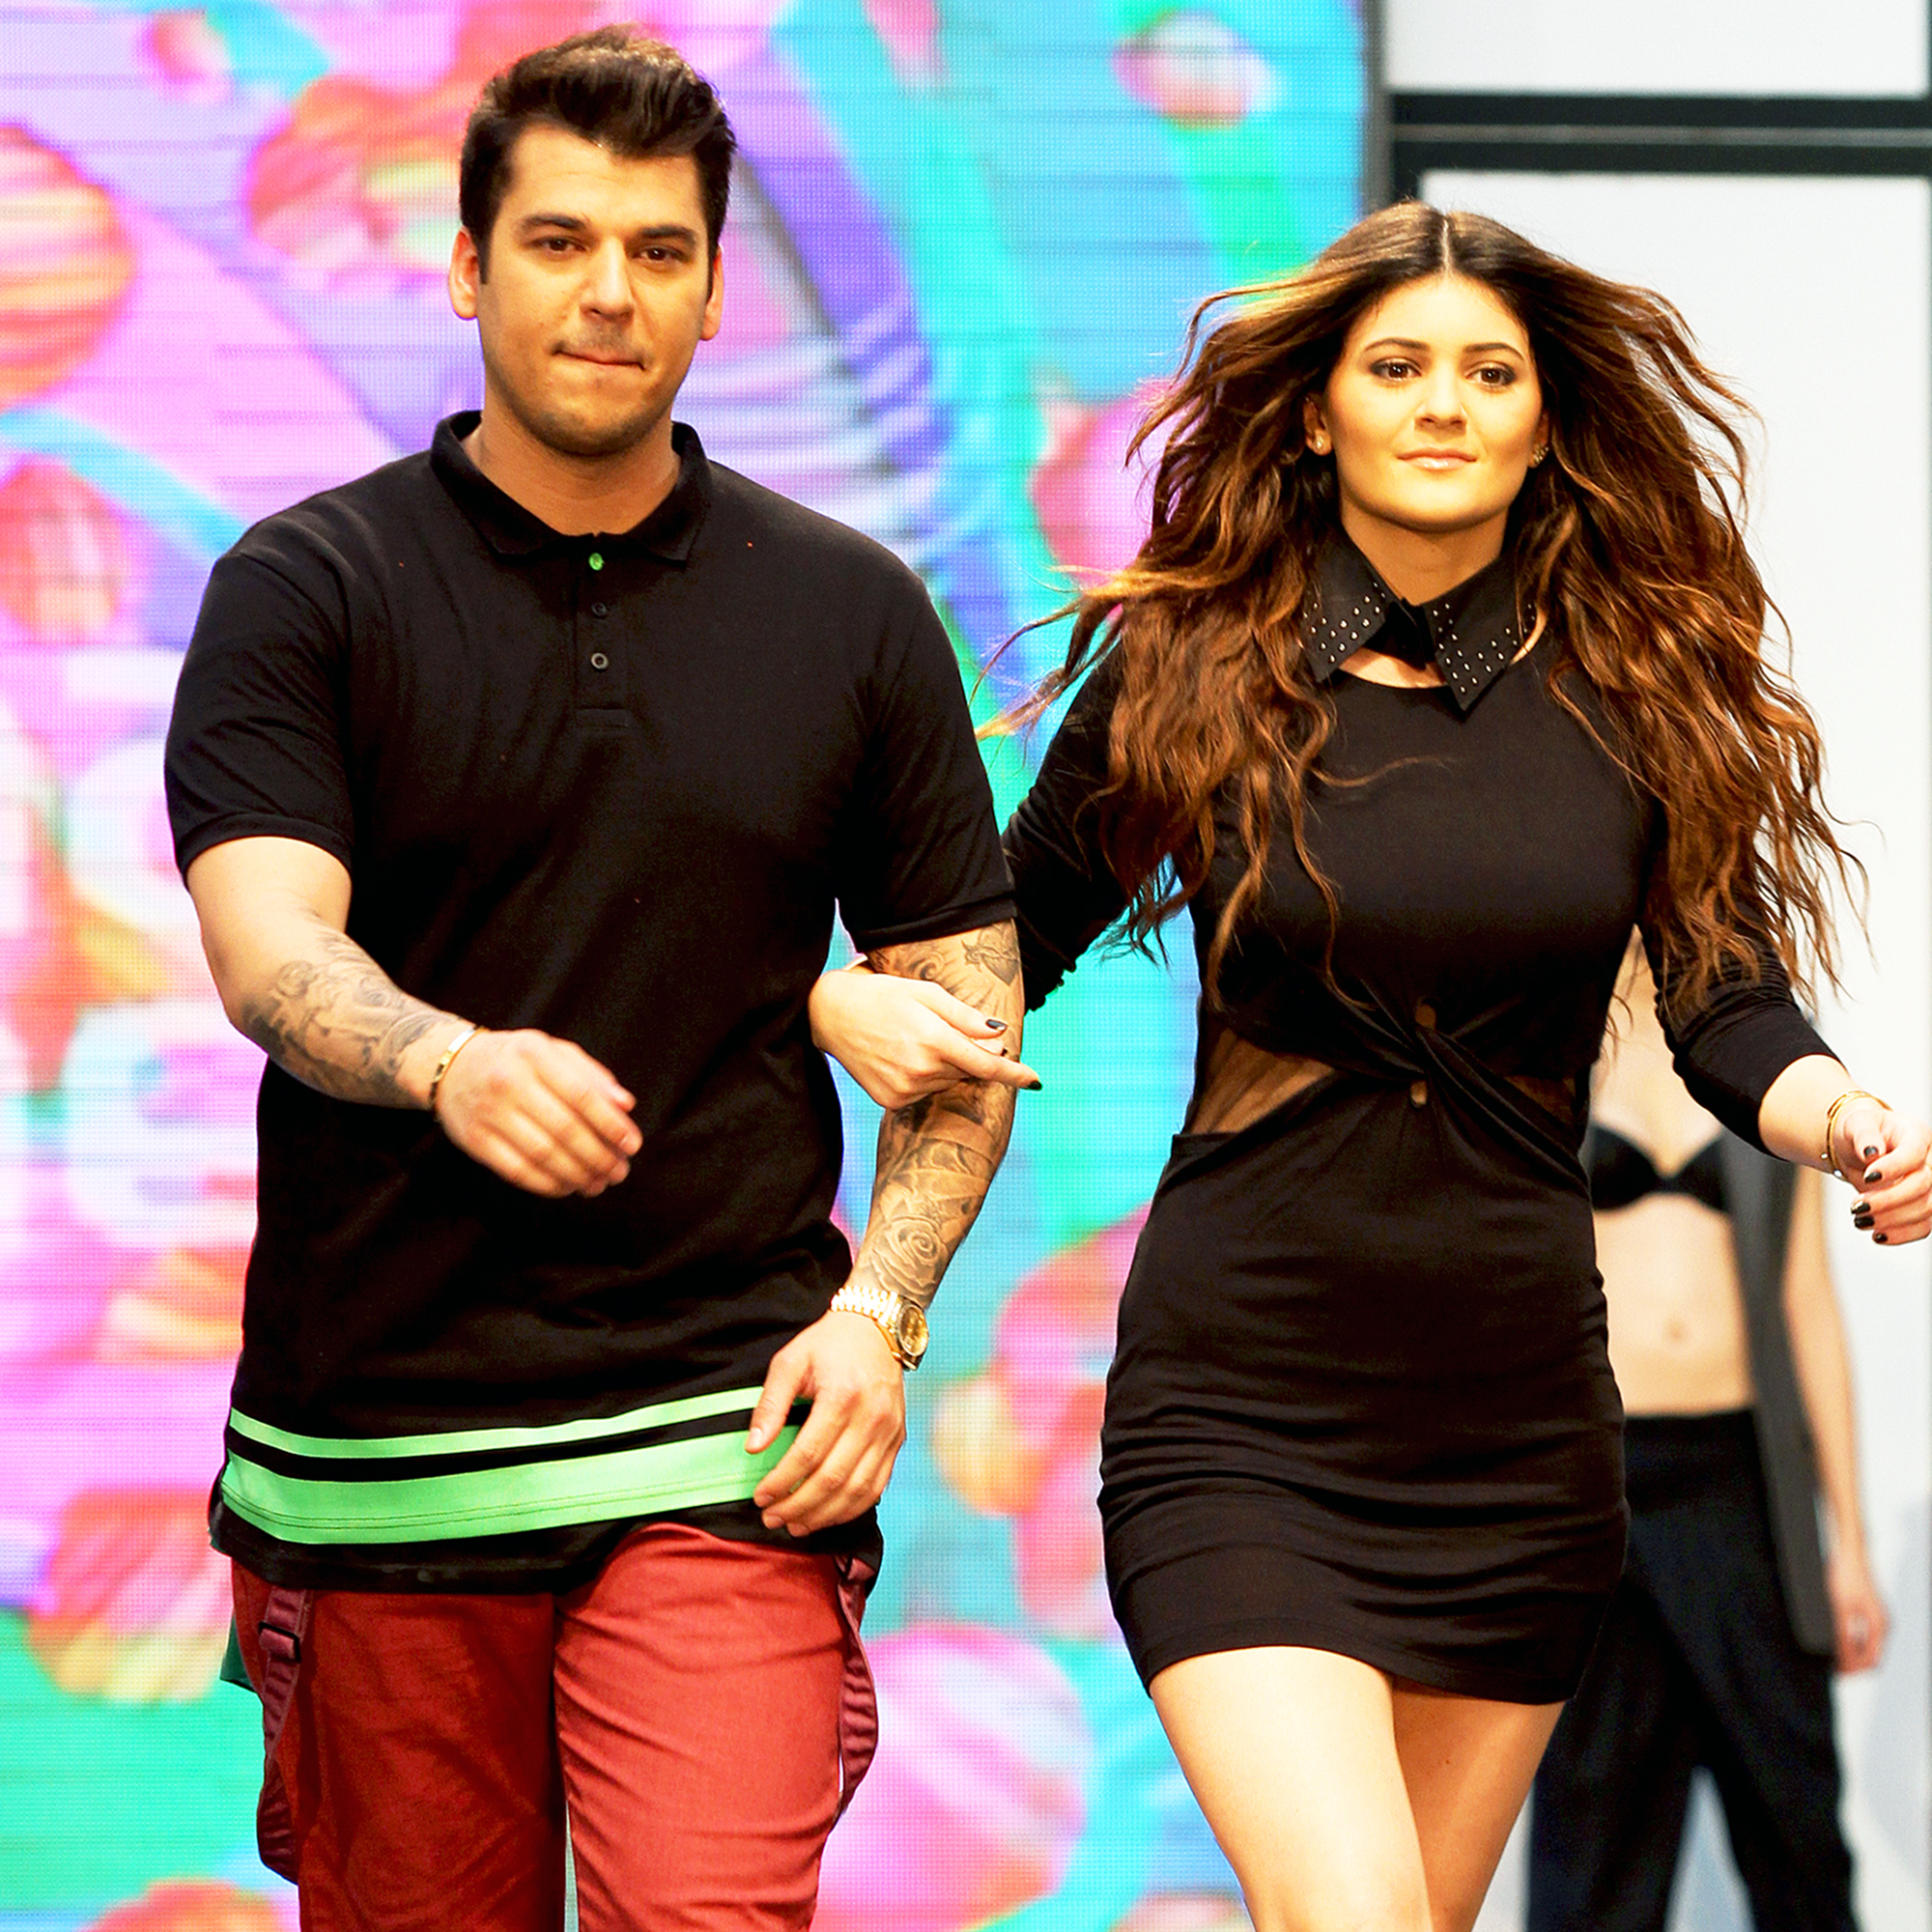 Iets Nieuws Rob Kardashian, Kylie Jenner Unveil Sock Collaboration @XI32